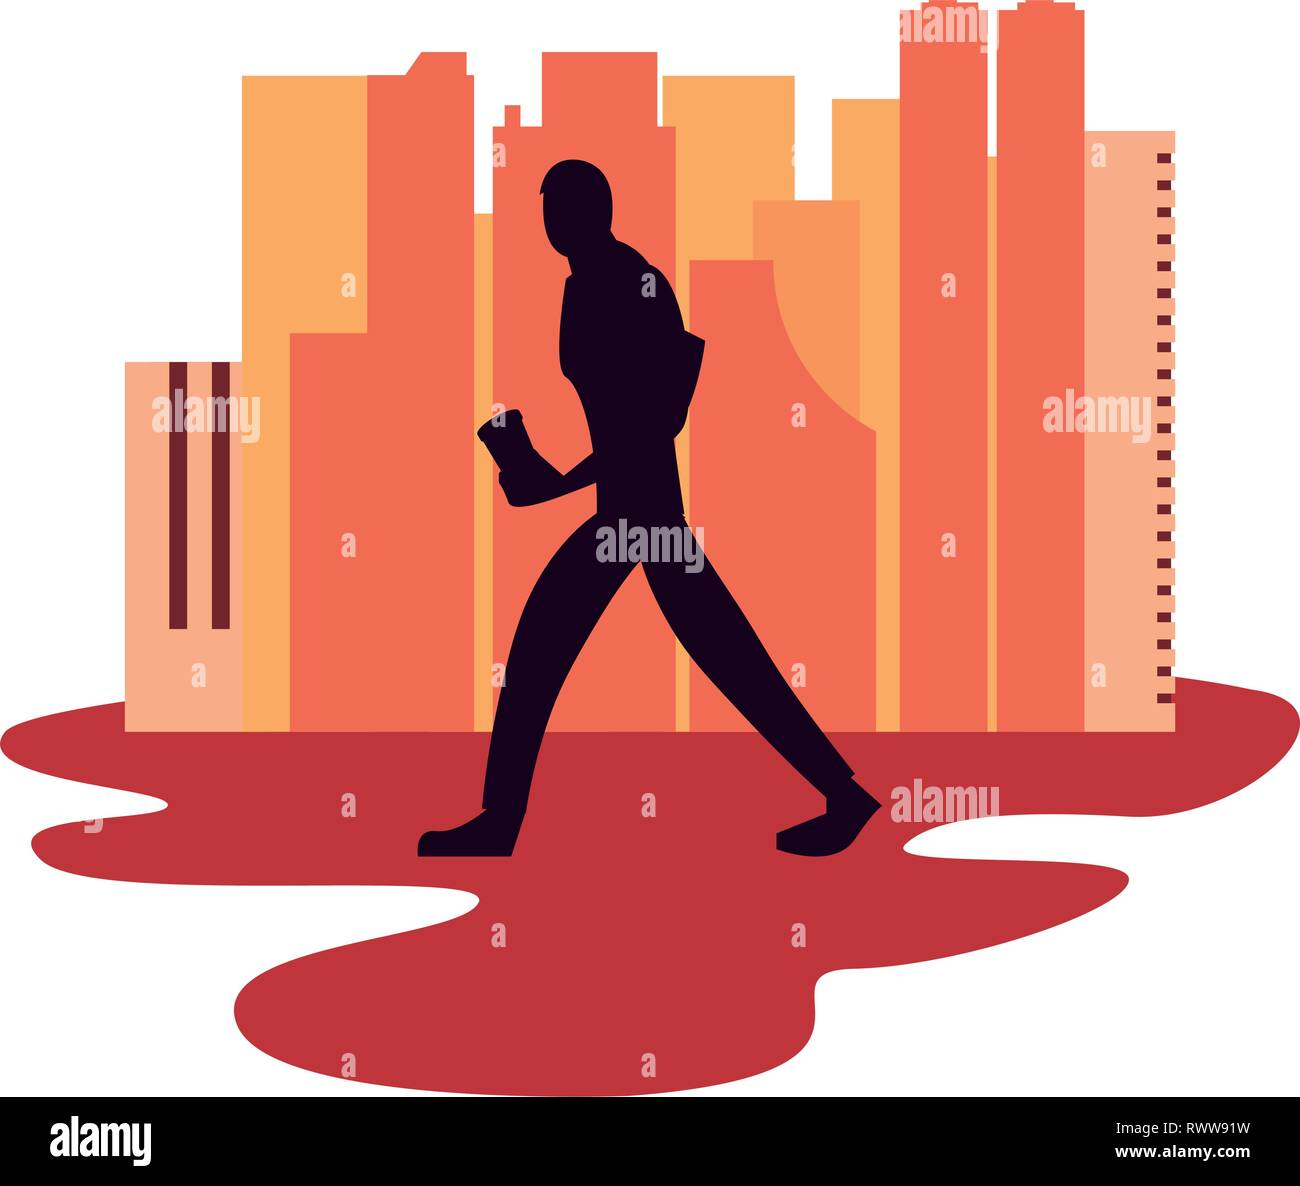 man silhouette walking with disposable cup in hand vector illustration vector illustration - Stock Vector